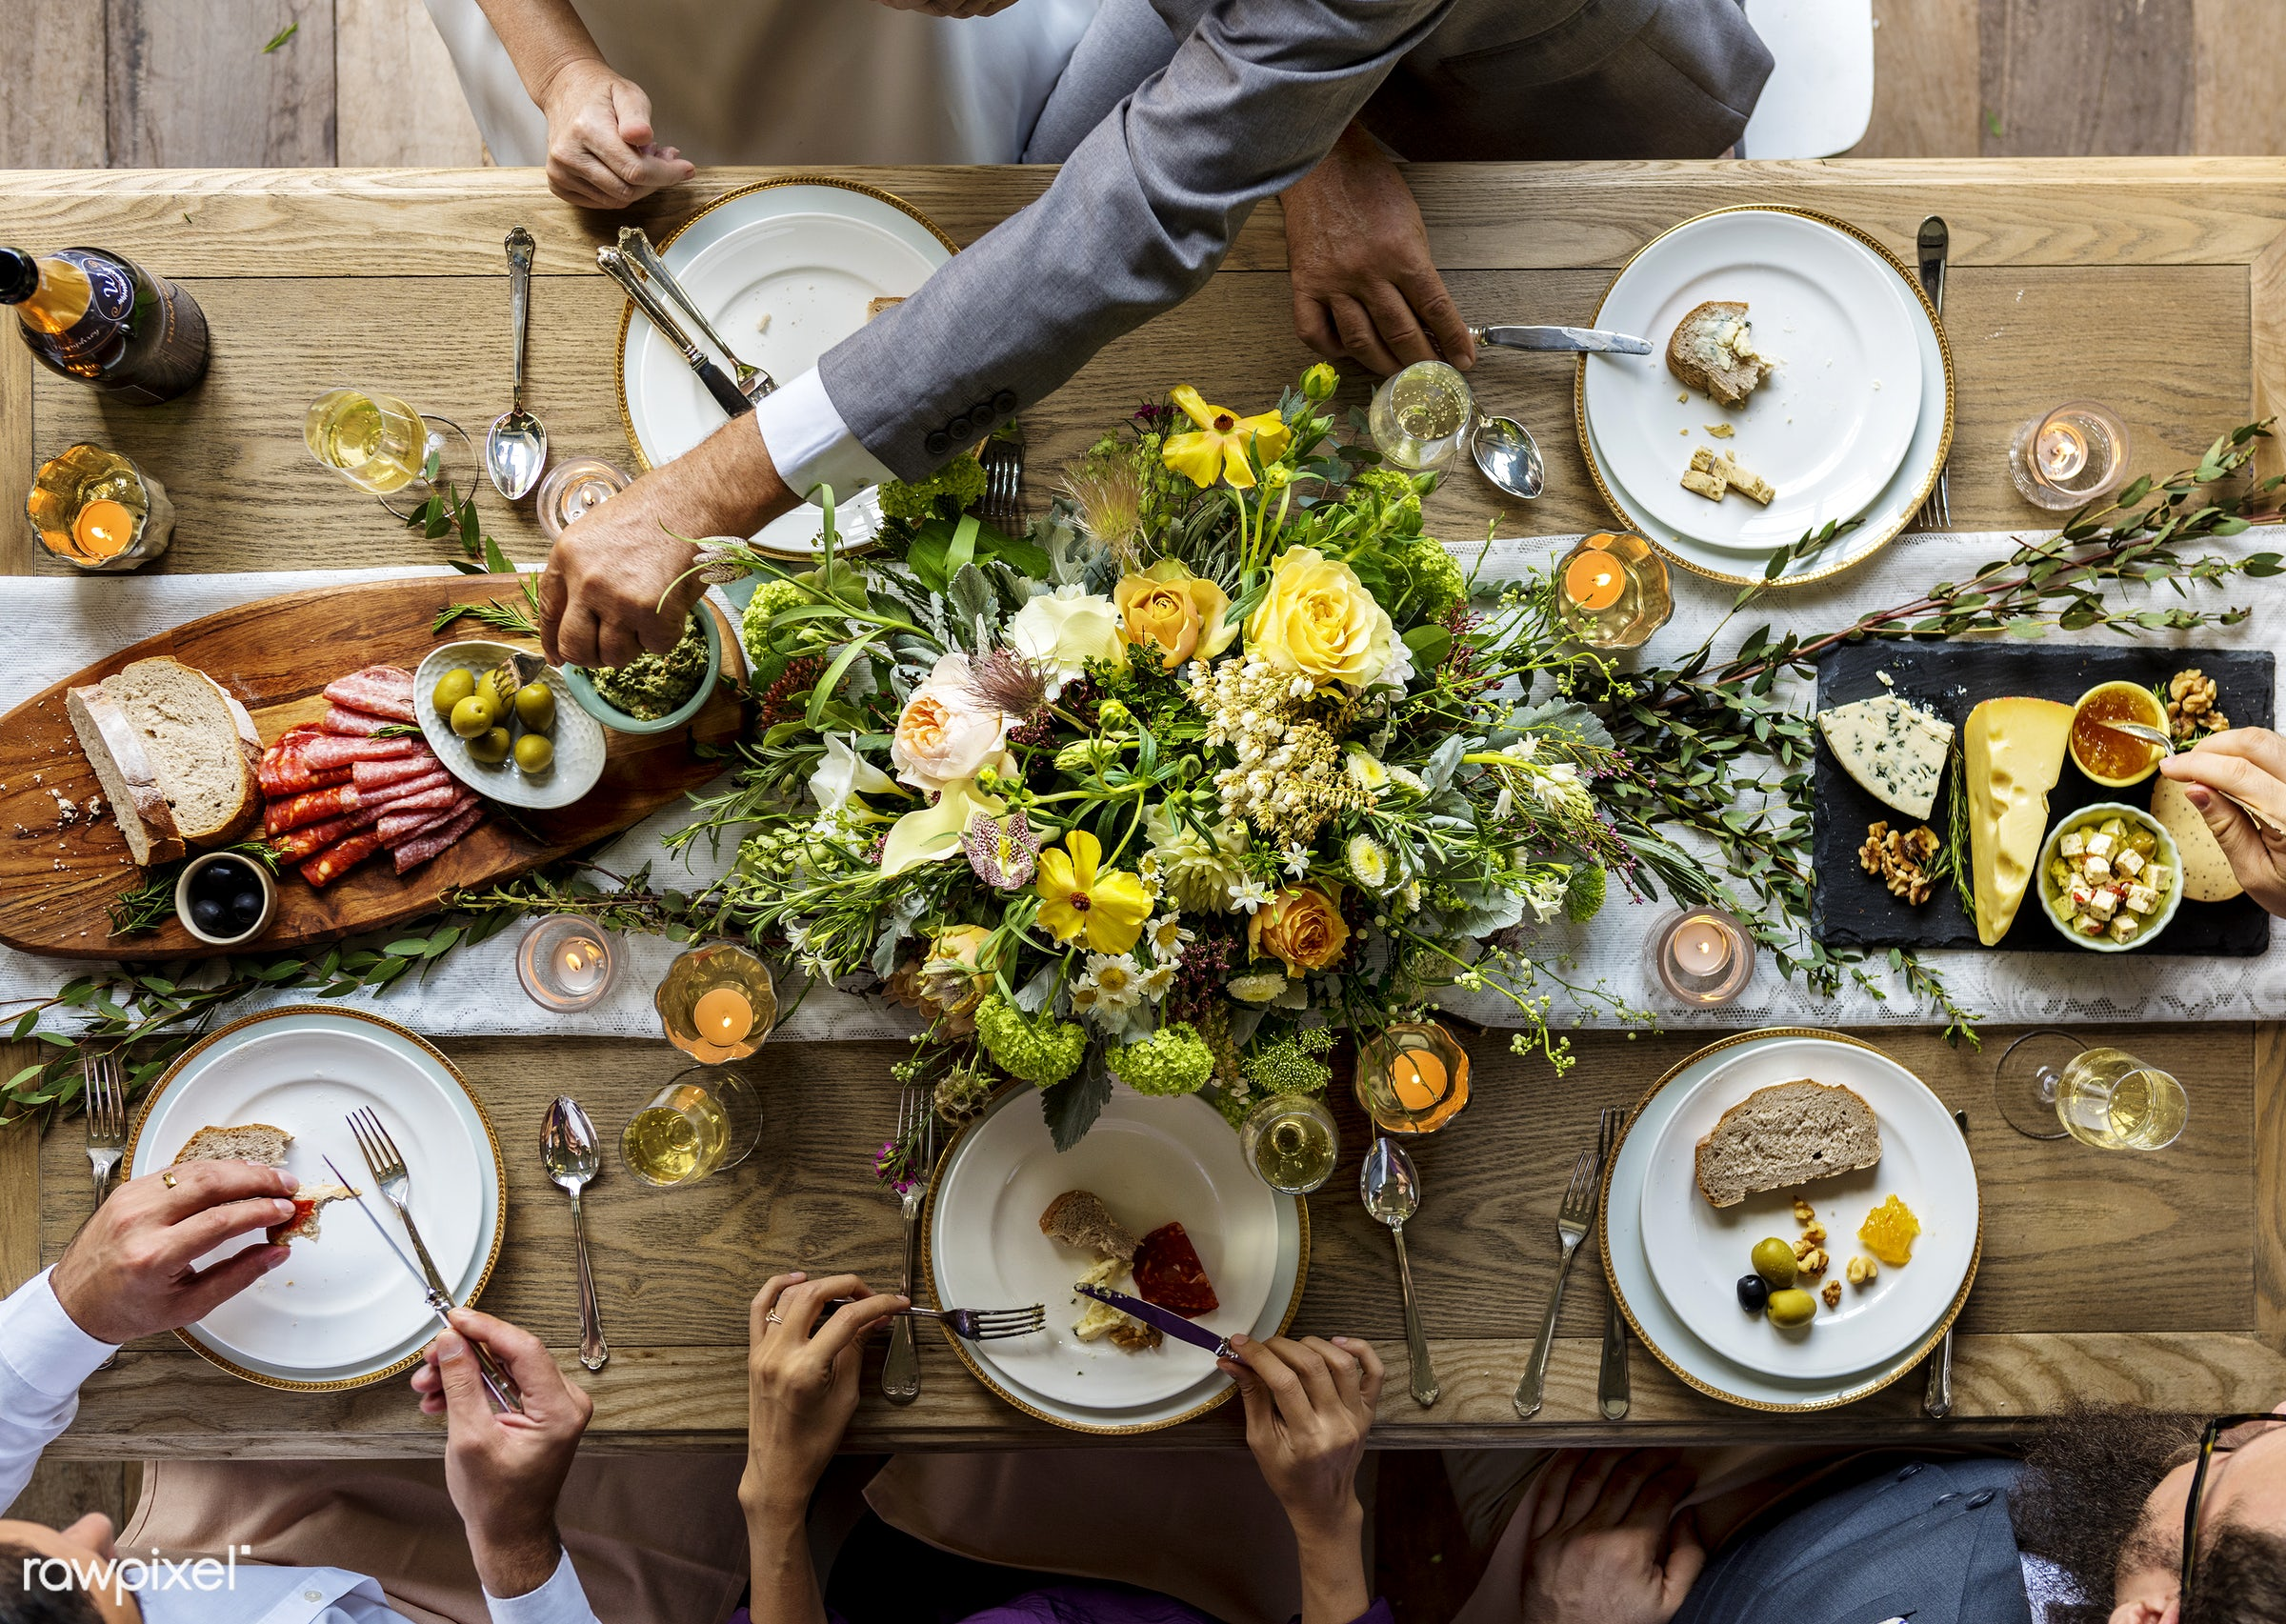 top view, flatlay, guests, occasion, people, together, table cloth, friends, hands, event, gather, aerial view, flowers,...